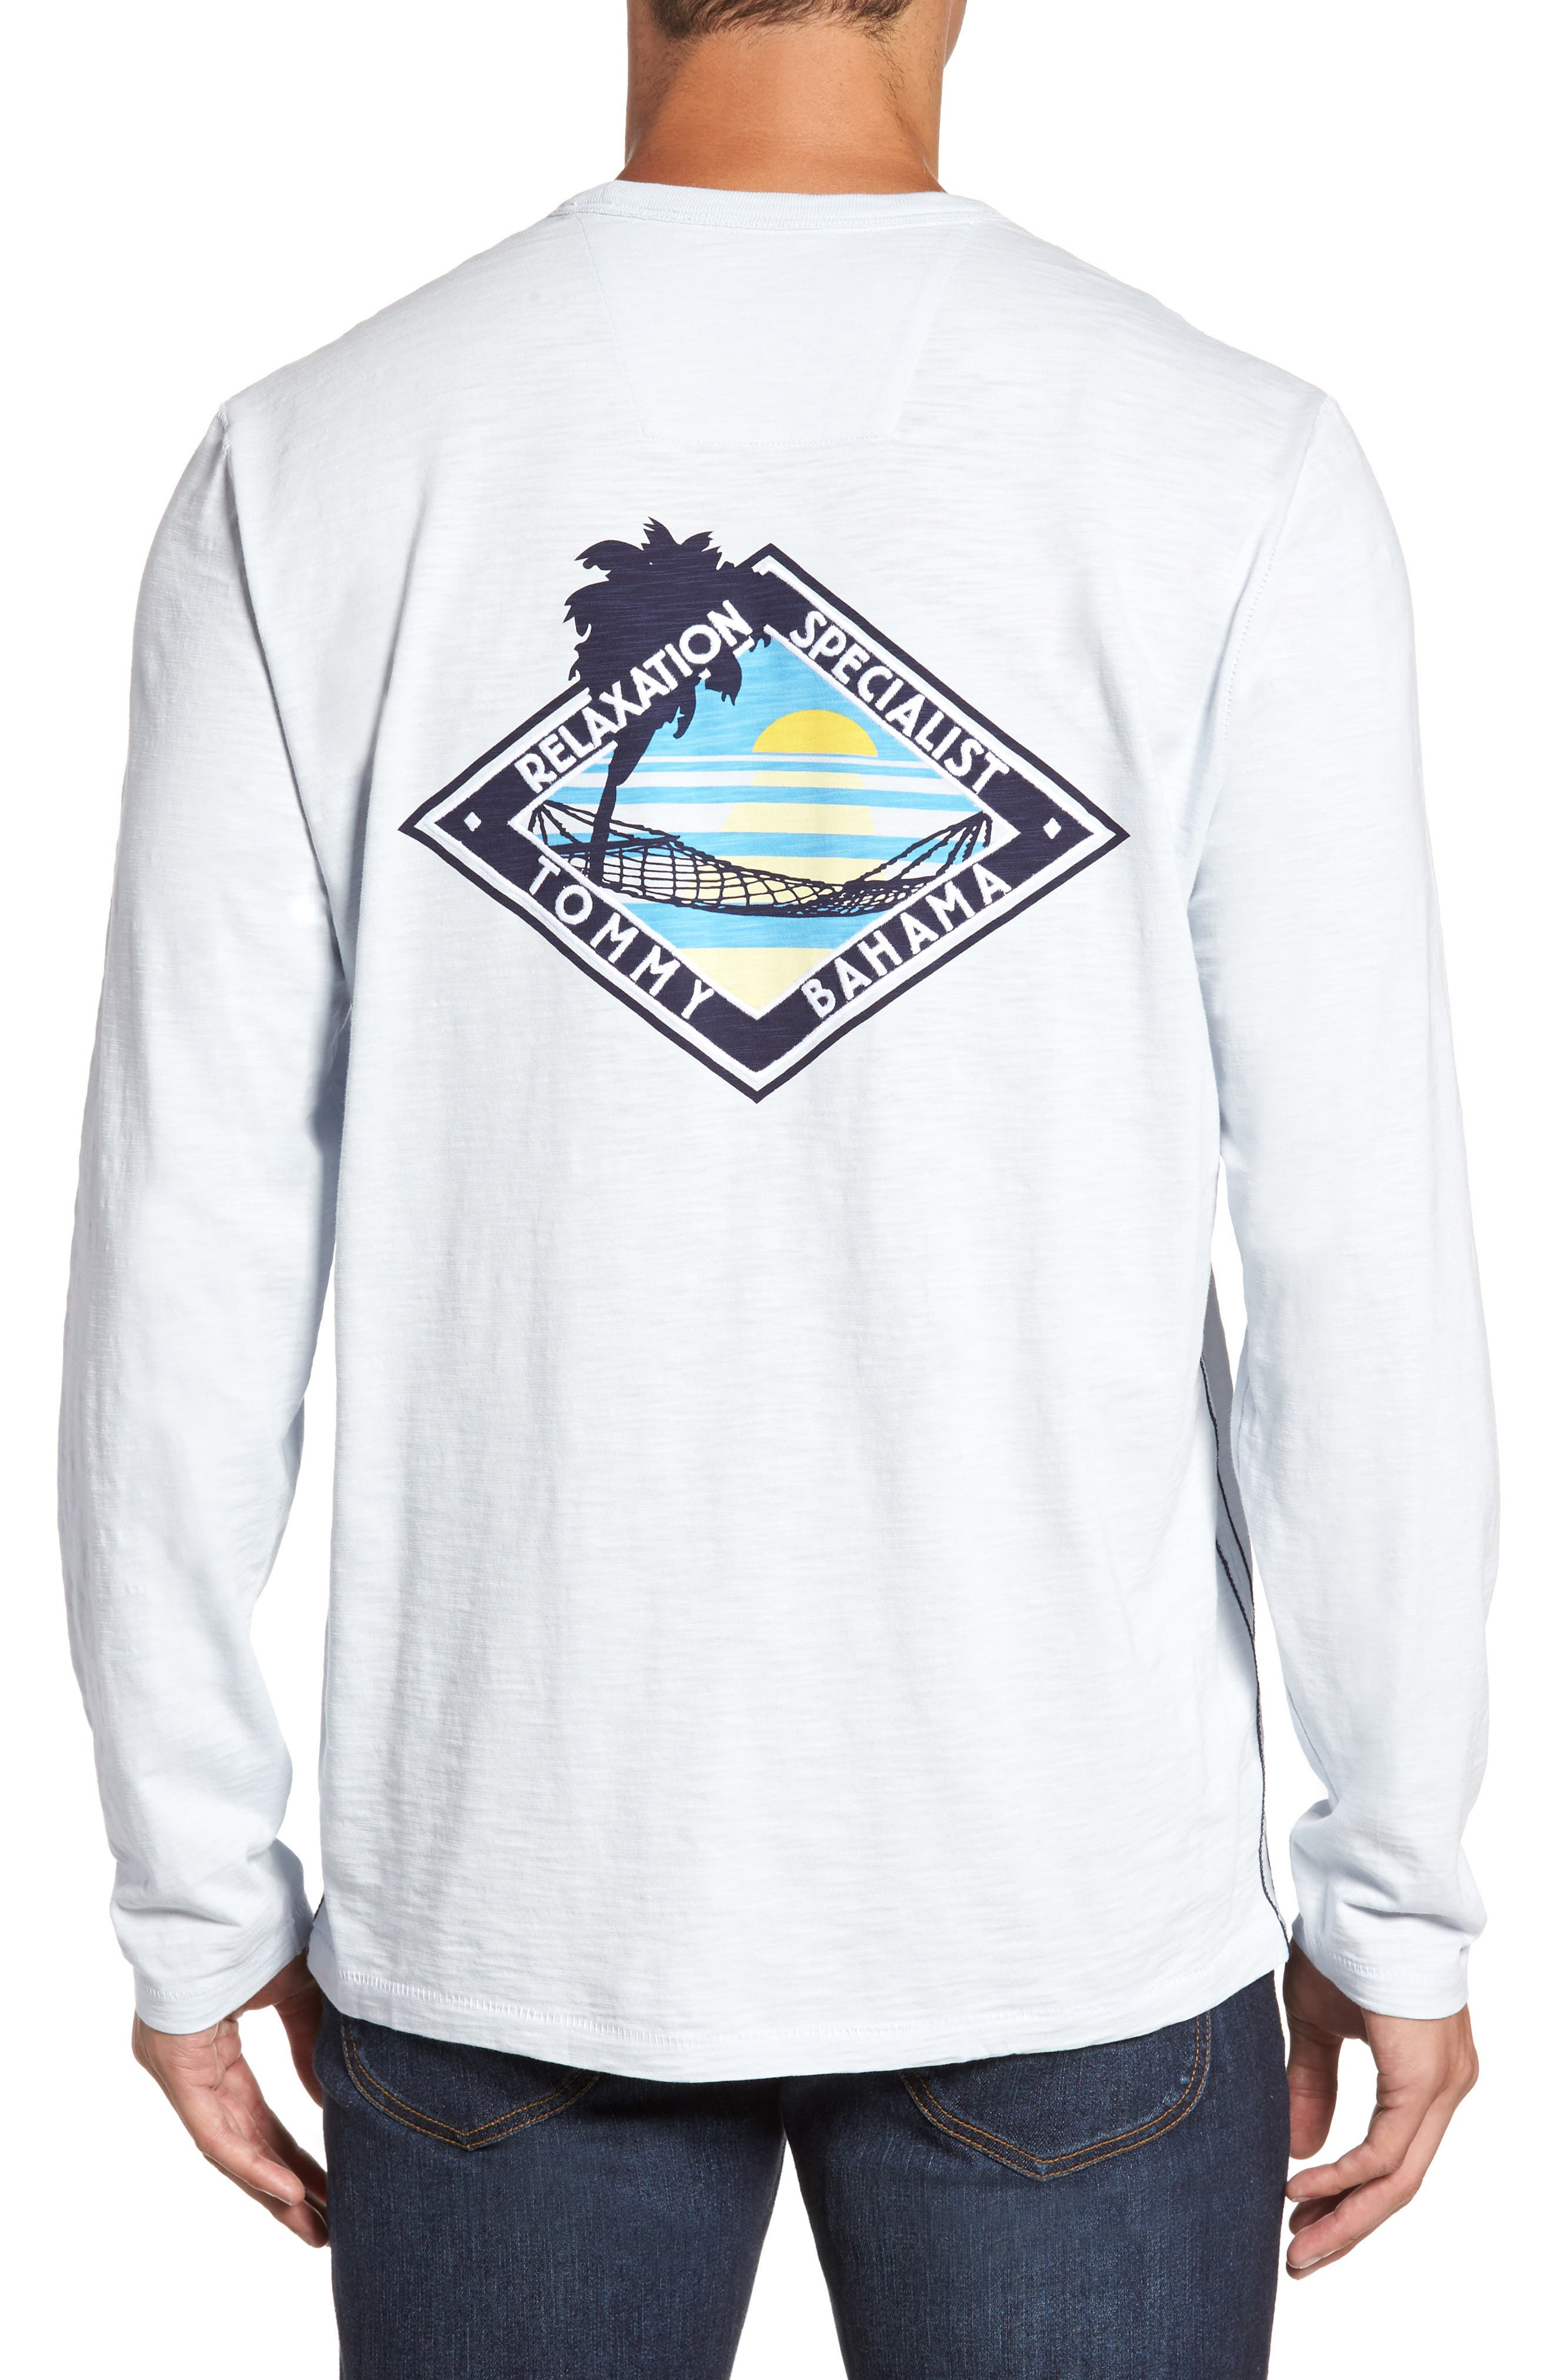 Alternate Image 1 Selected - Tommy Bahama Relaxation Specialist T-Shirt